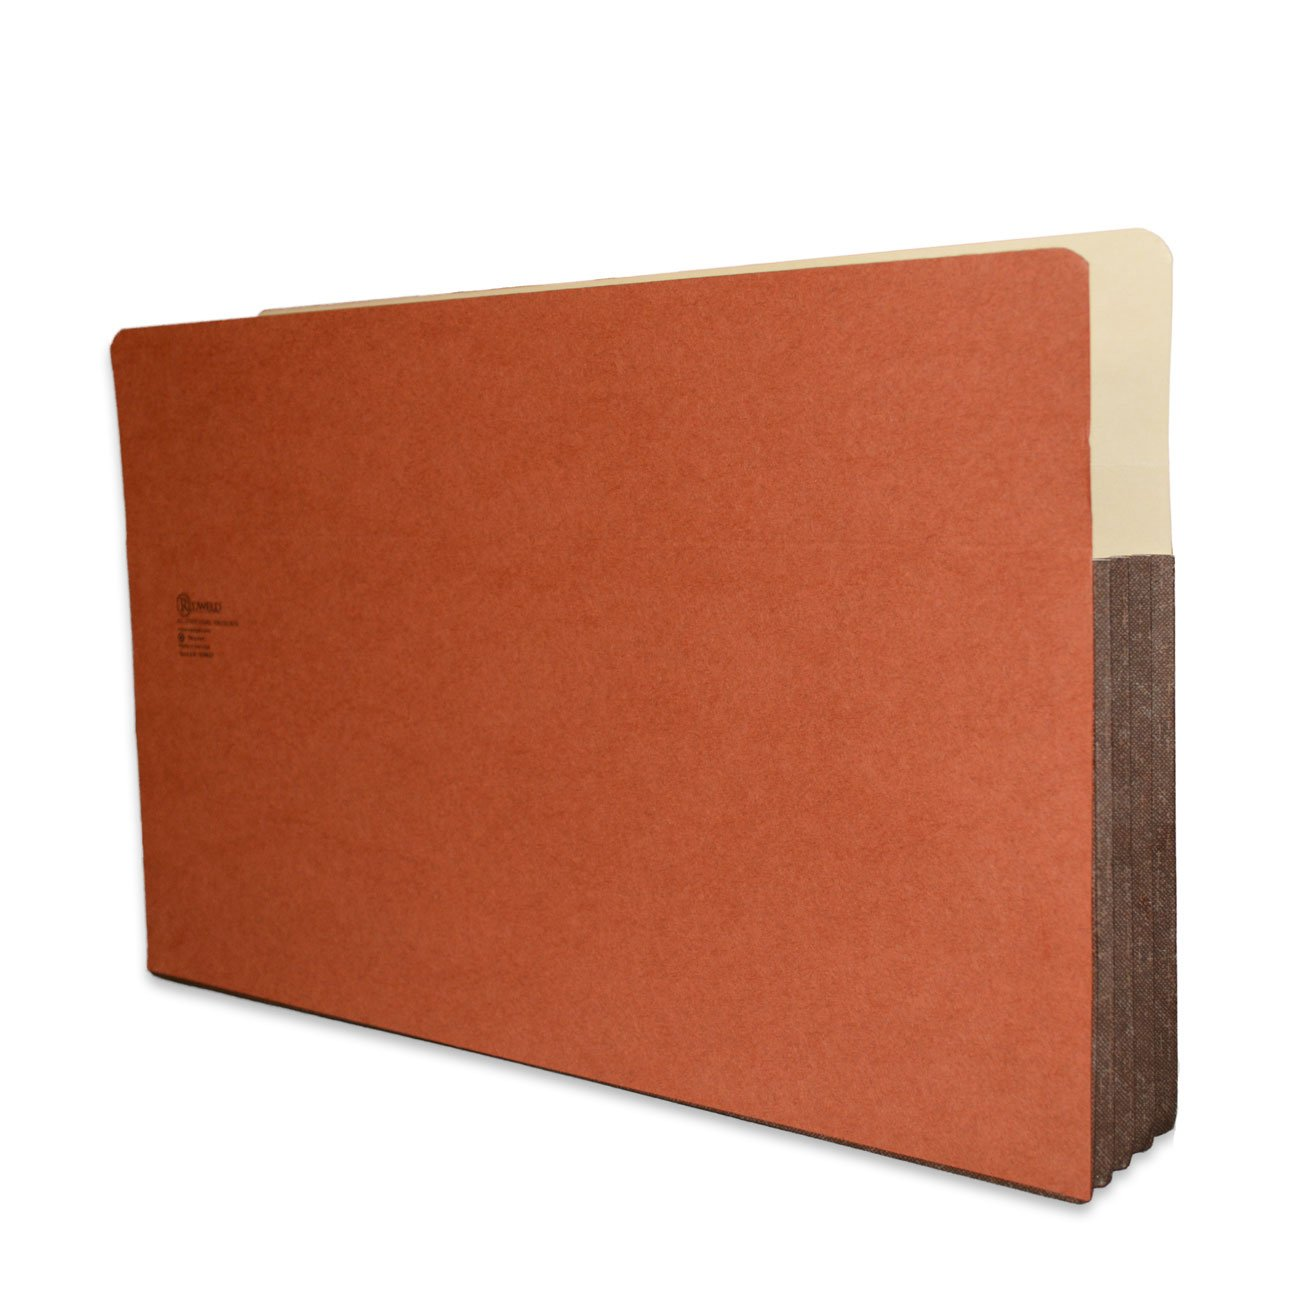 Redweld File Pocket, Top Tab, Extra Large Legal Size with 3 1/2'' Fully Reinforced Tyvek Gusset, 50 per Carton